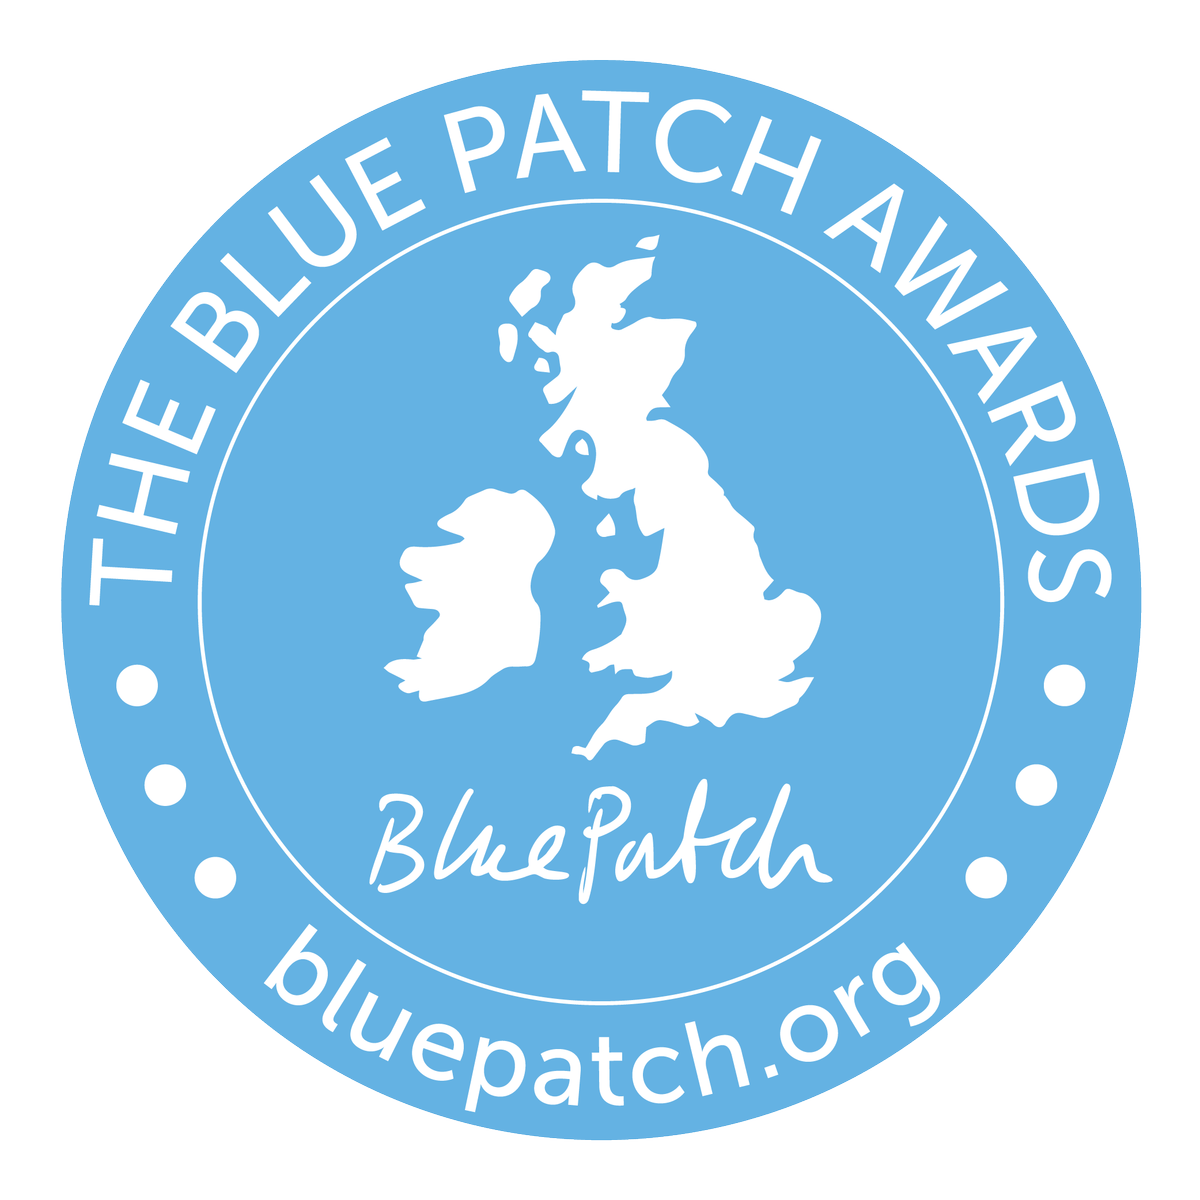 The Blue Patch Awards 2018